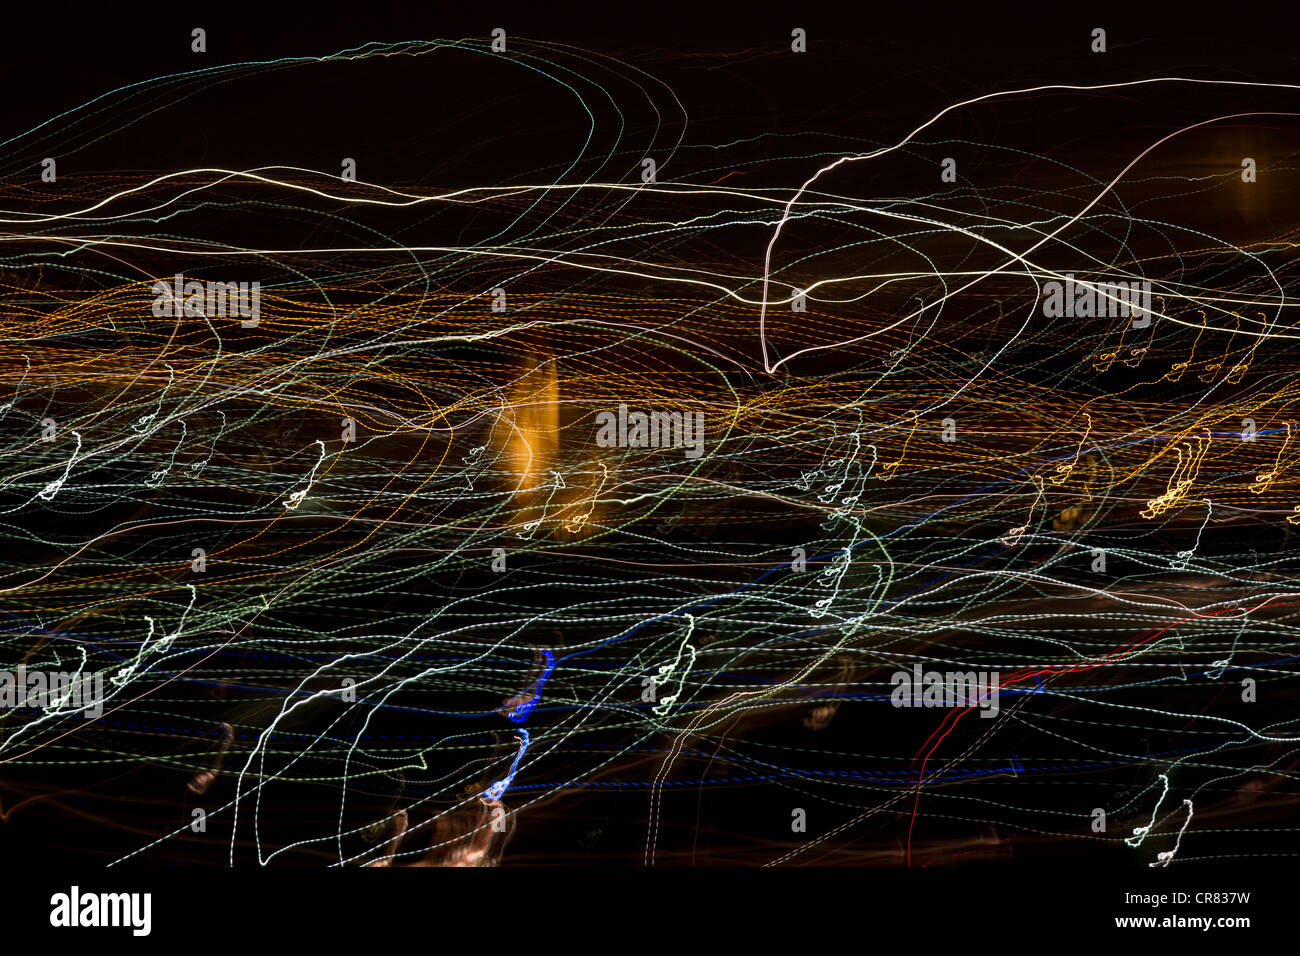 Moving lights at night with camera movements - Stock Image